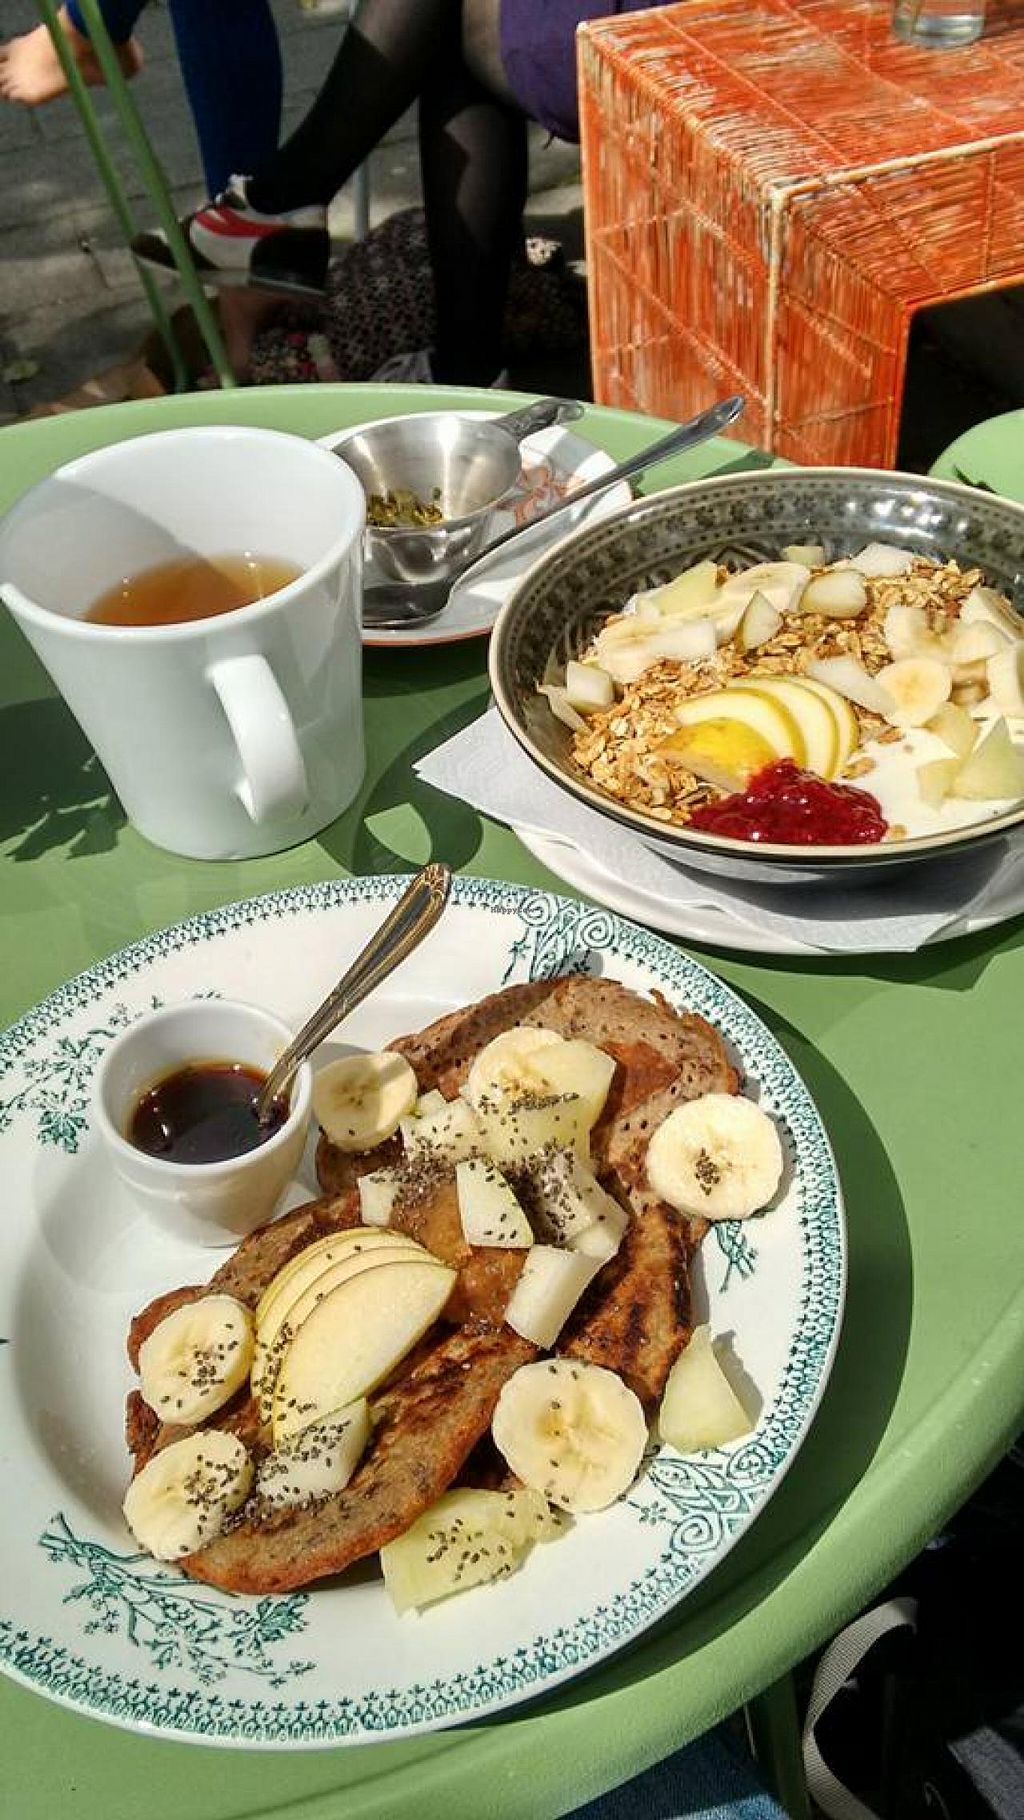 """Photo of Beter & Leuk  by <a href=""""/members/profile/StephenEamonn"""">StephenEamonn</a> <br/>Our brunch!  Buckwheat pancakes with so many toppings! Granola with soy yoghurt and a fruit mix <br/> June 1, 2015  - <a href='/contact/abuse/image/37875/104377'>Report</a>"""